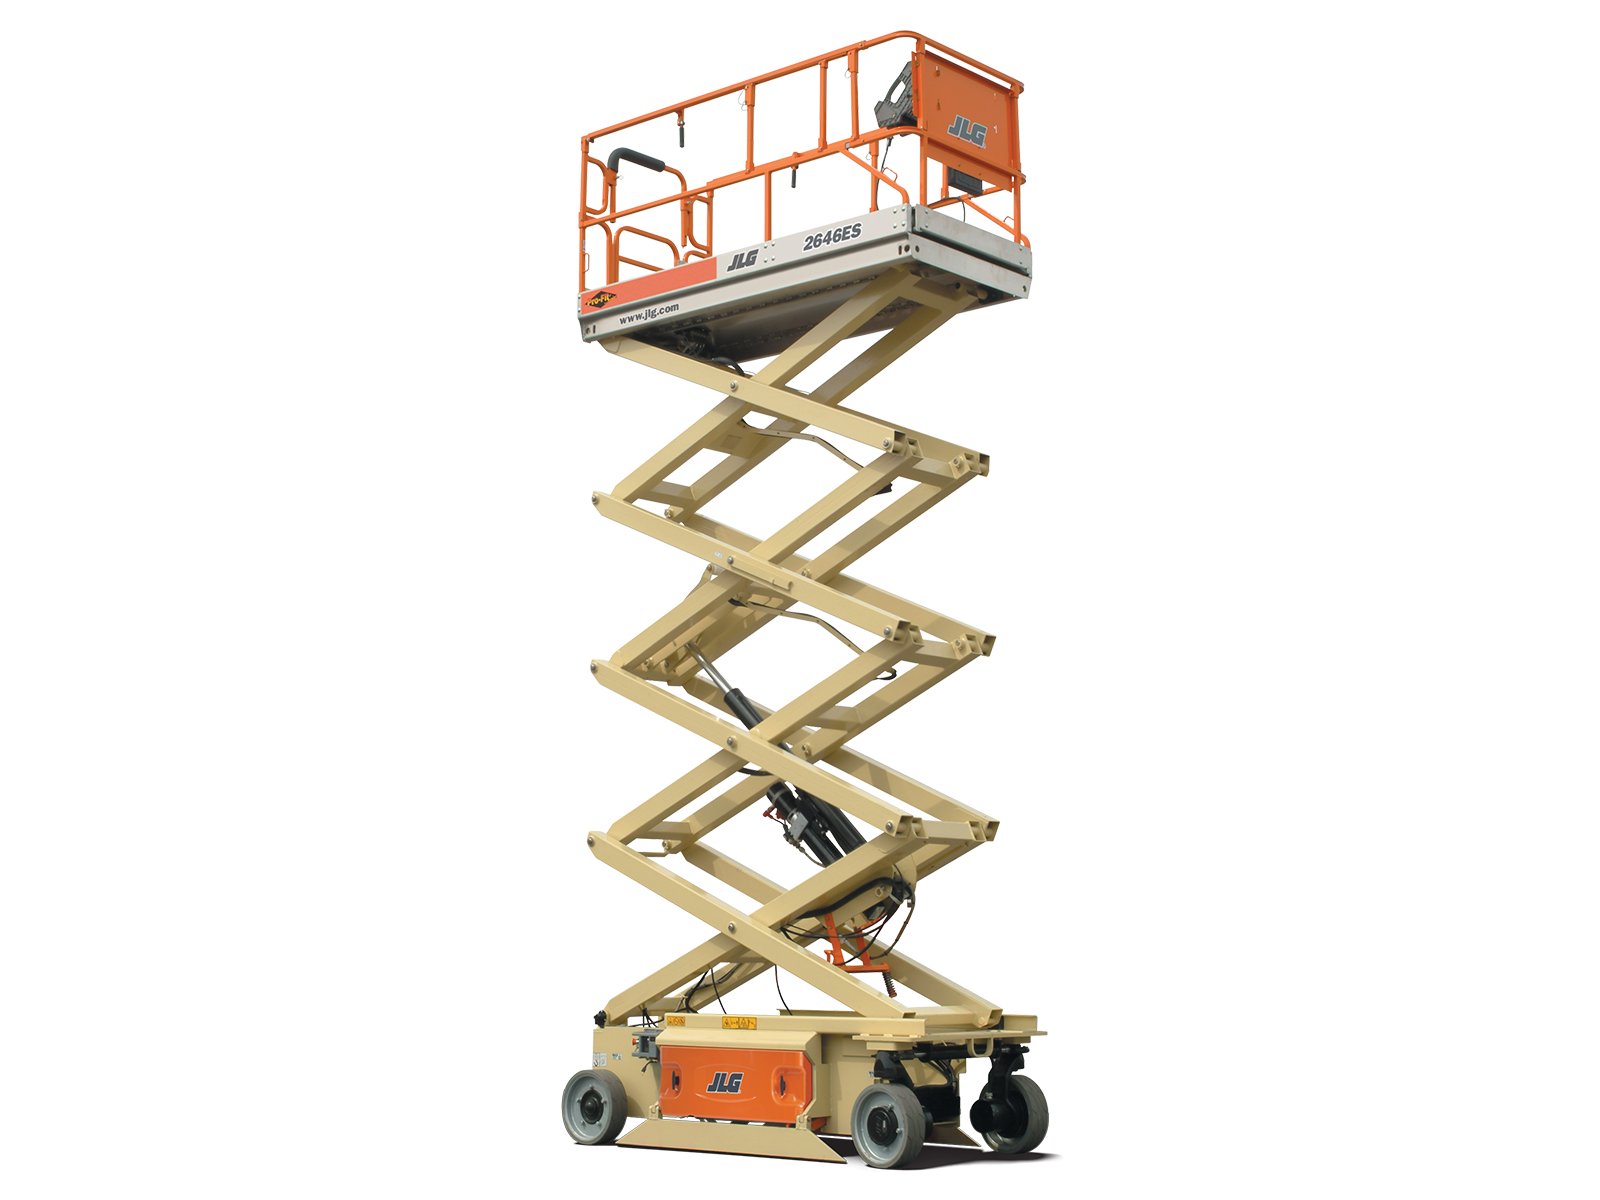 JLG electric sciccor lift 2646ES 1/32